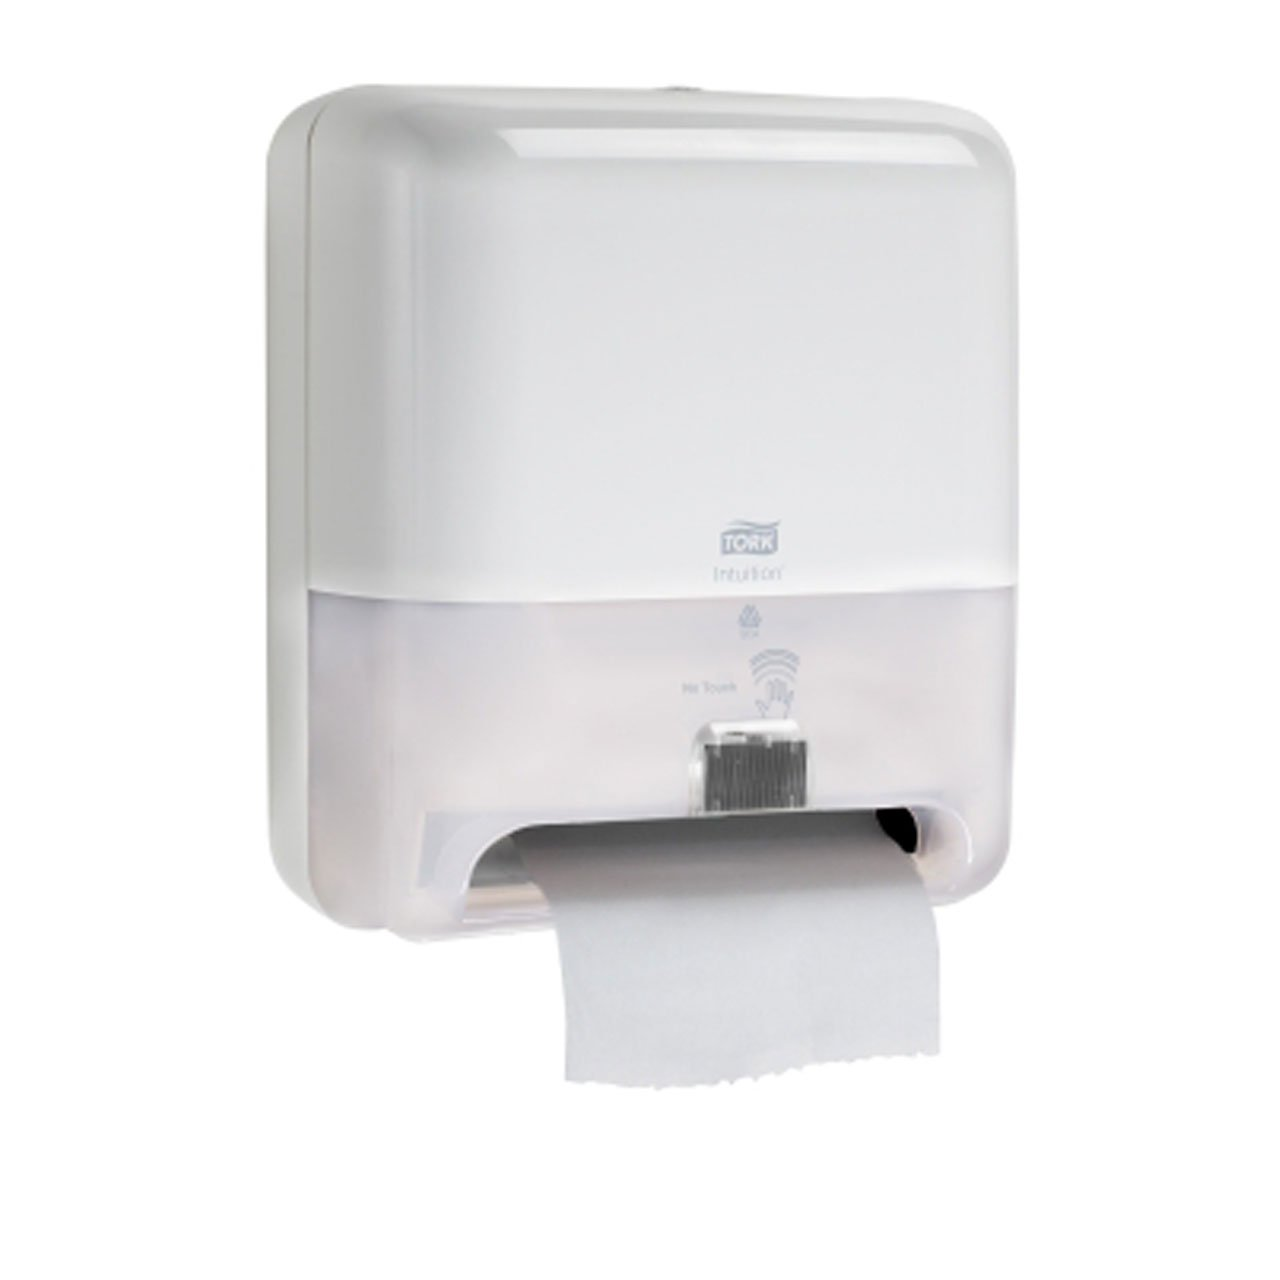 Amazon.com: 5511282 Tork Matic Hand Towel Roll Dispenser - with Intuition Sensor: Home Improvement